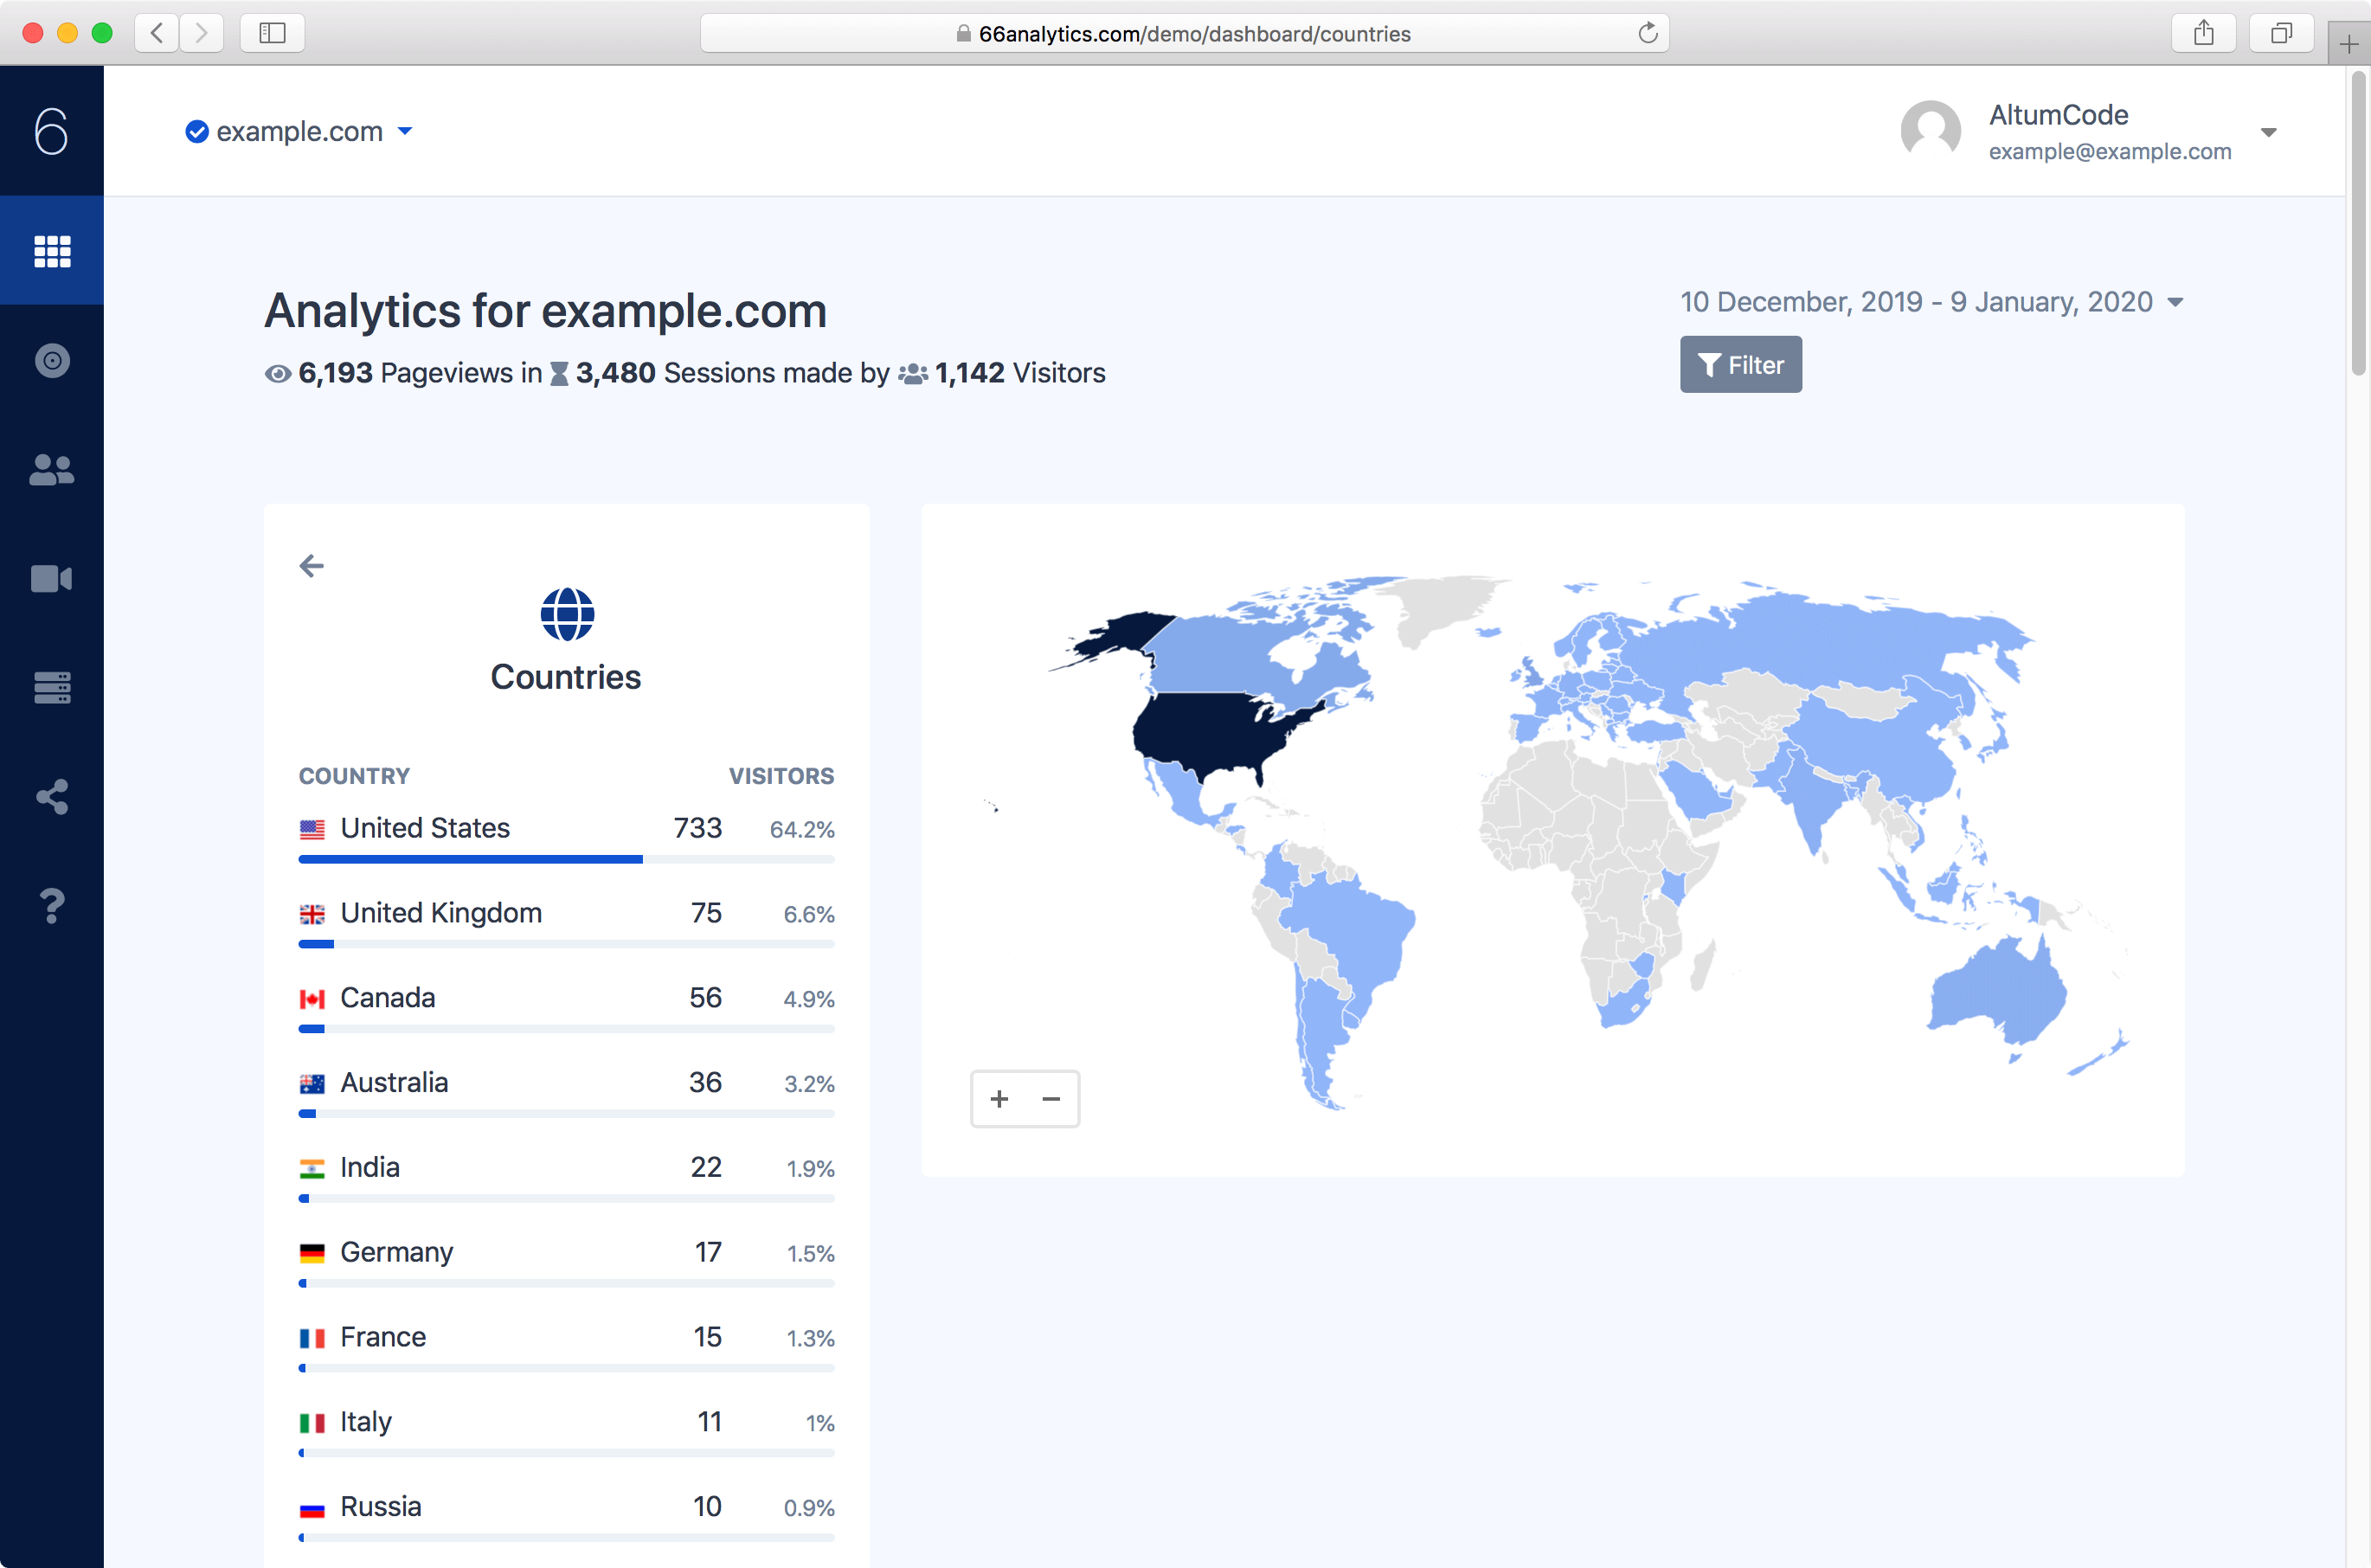 dashboard_countries.png